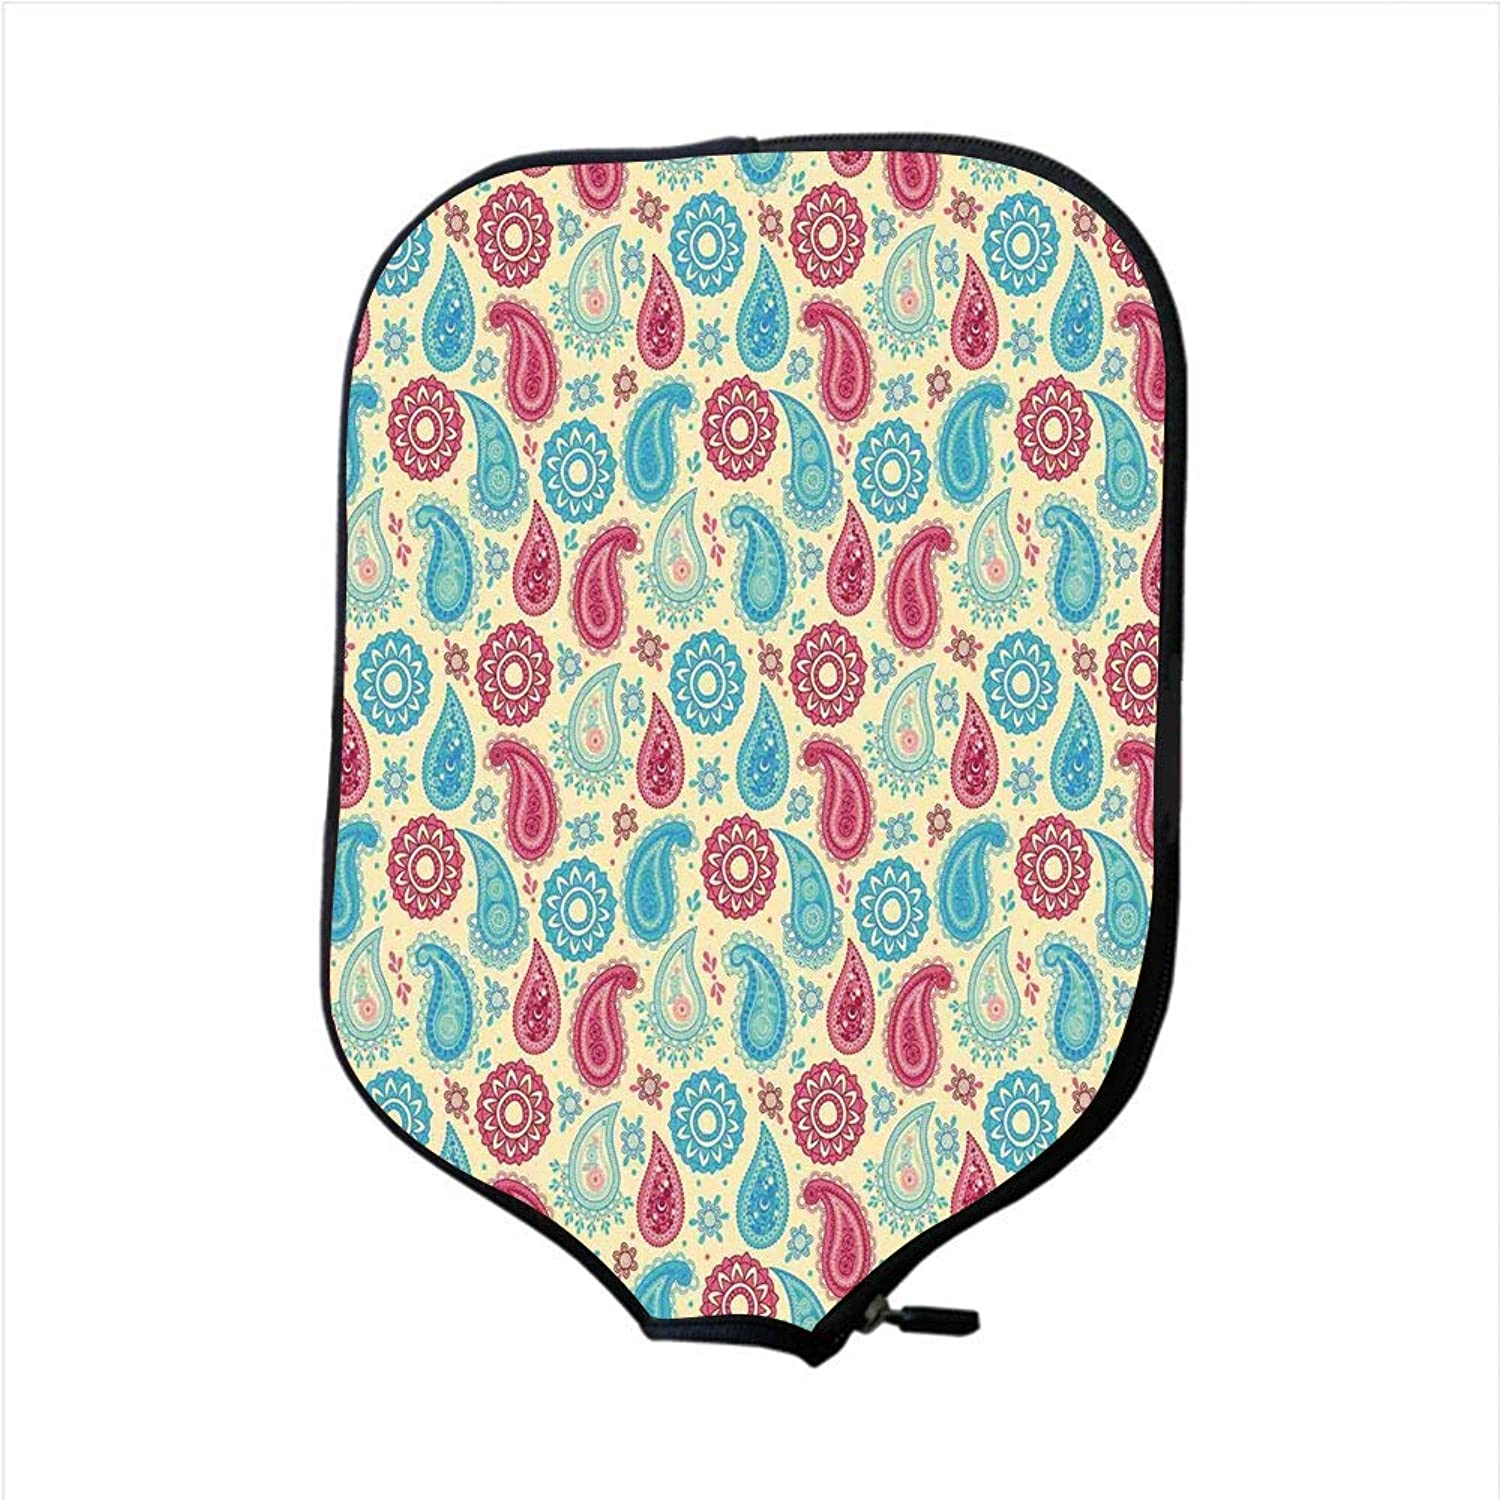 Fine Neoprene Pickleball Paddle Racket Cover Case,Paisley,Retro Style Paisley Patterns and Flowers Ethnic Design Home Decor Decorative,Turquoise Pink Cream,Fit for Most Rackets